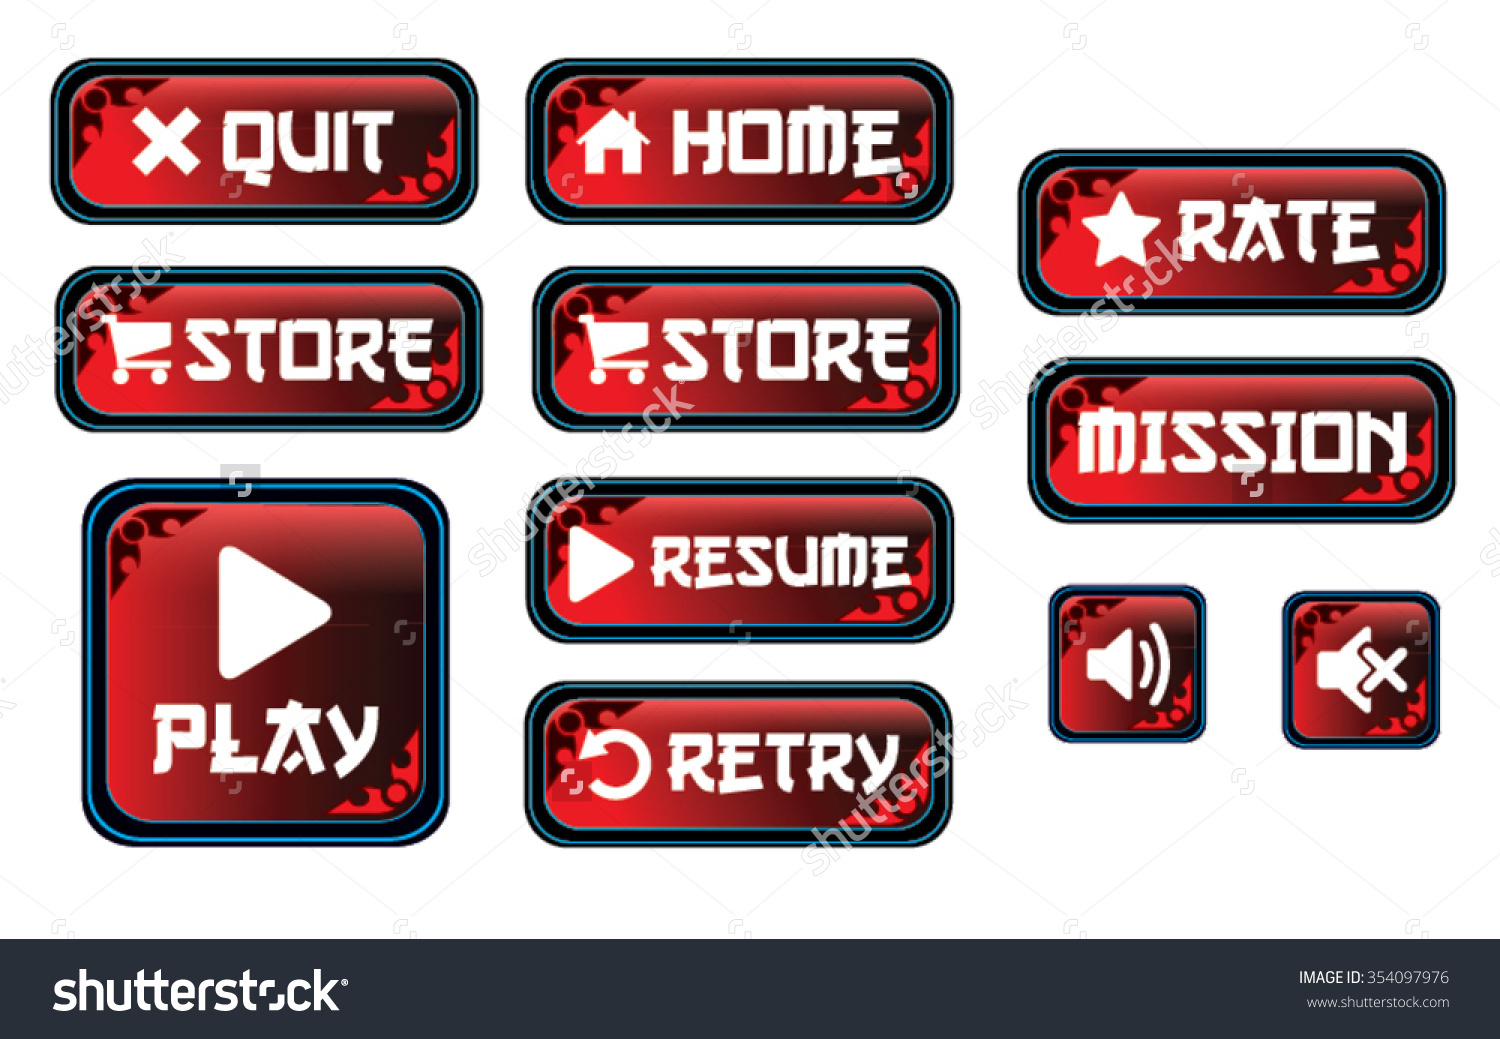 Red Tint Buttons Quit Restore Rate Stock Vector 354097976.